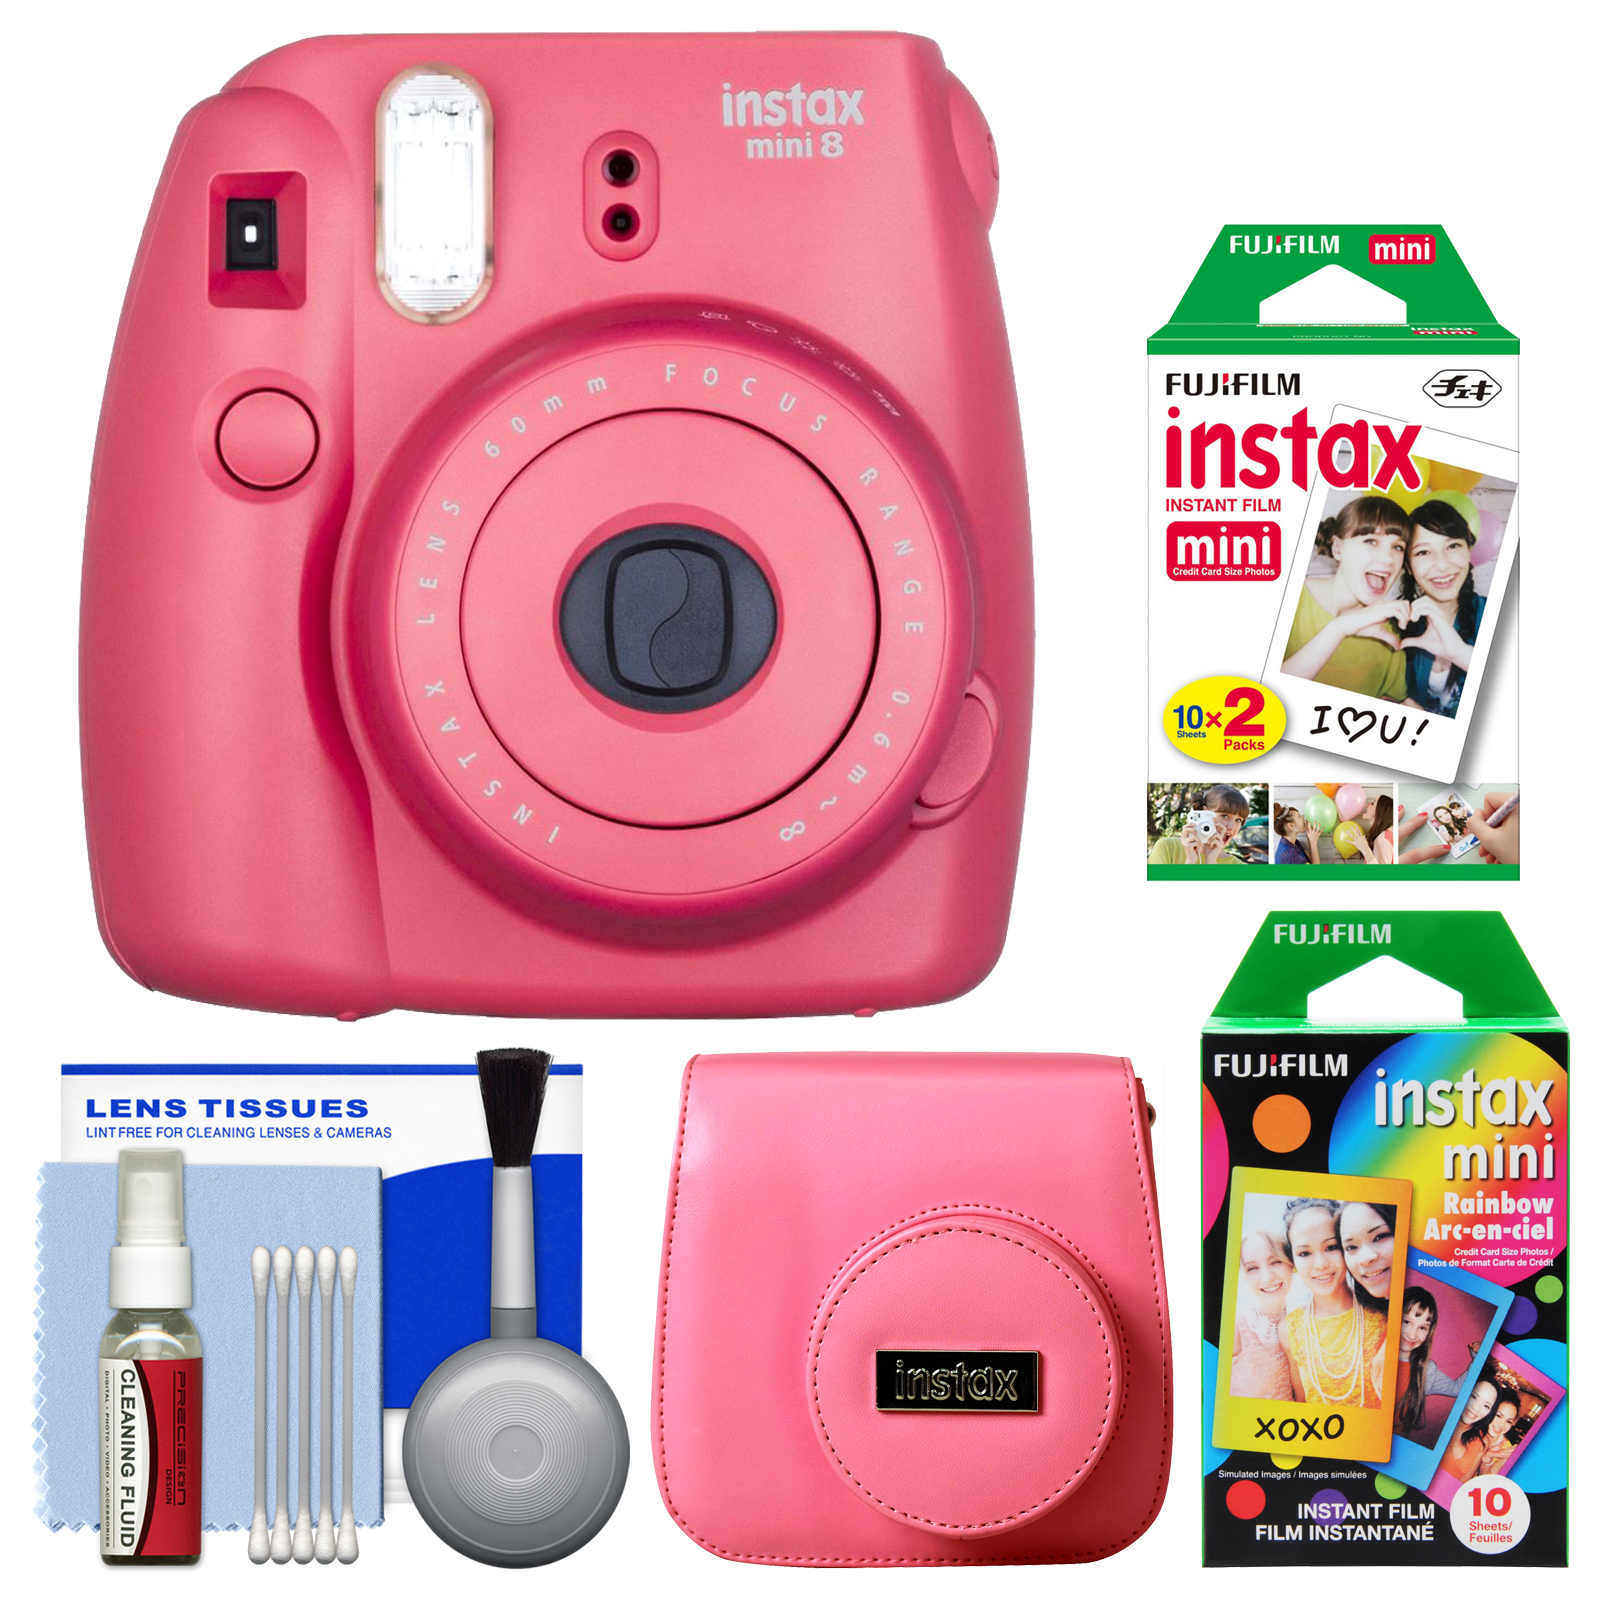 Fujifilm Instax Mini 8 Instant Film Camera (Raspberry) with 20 Twin & 10 Rainbow Prints + Case + Kit